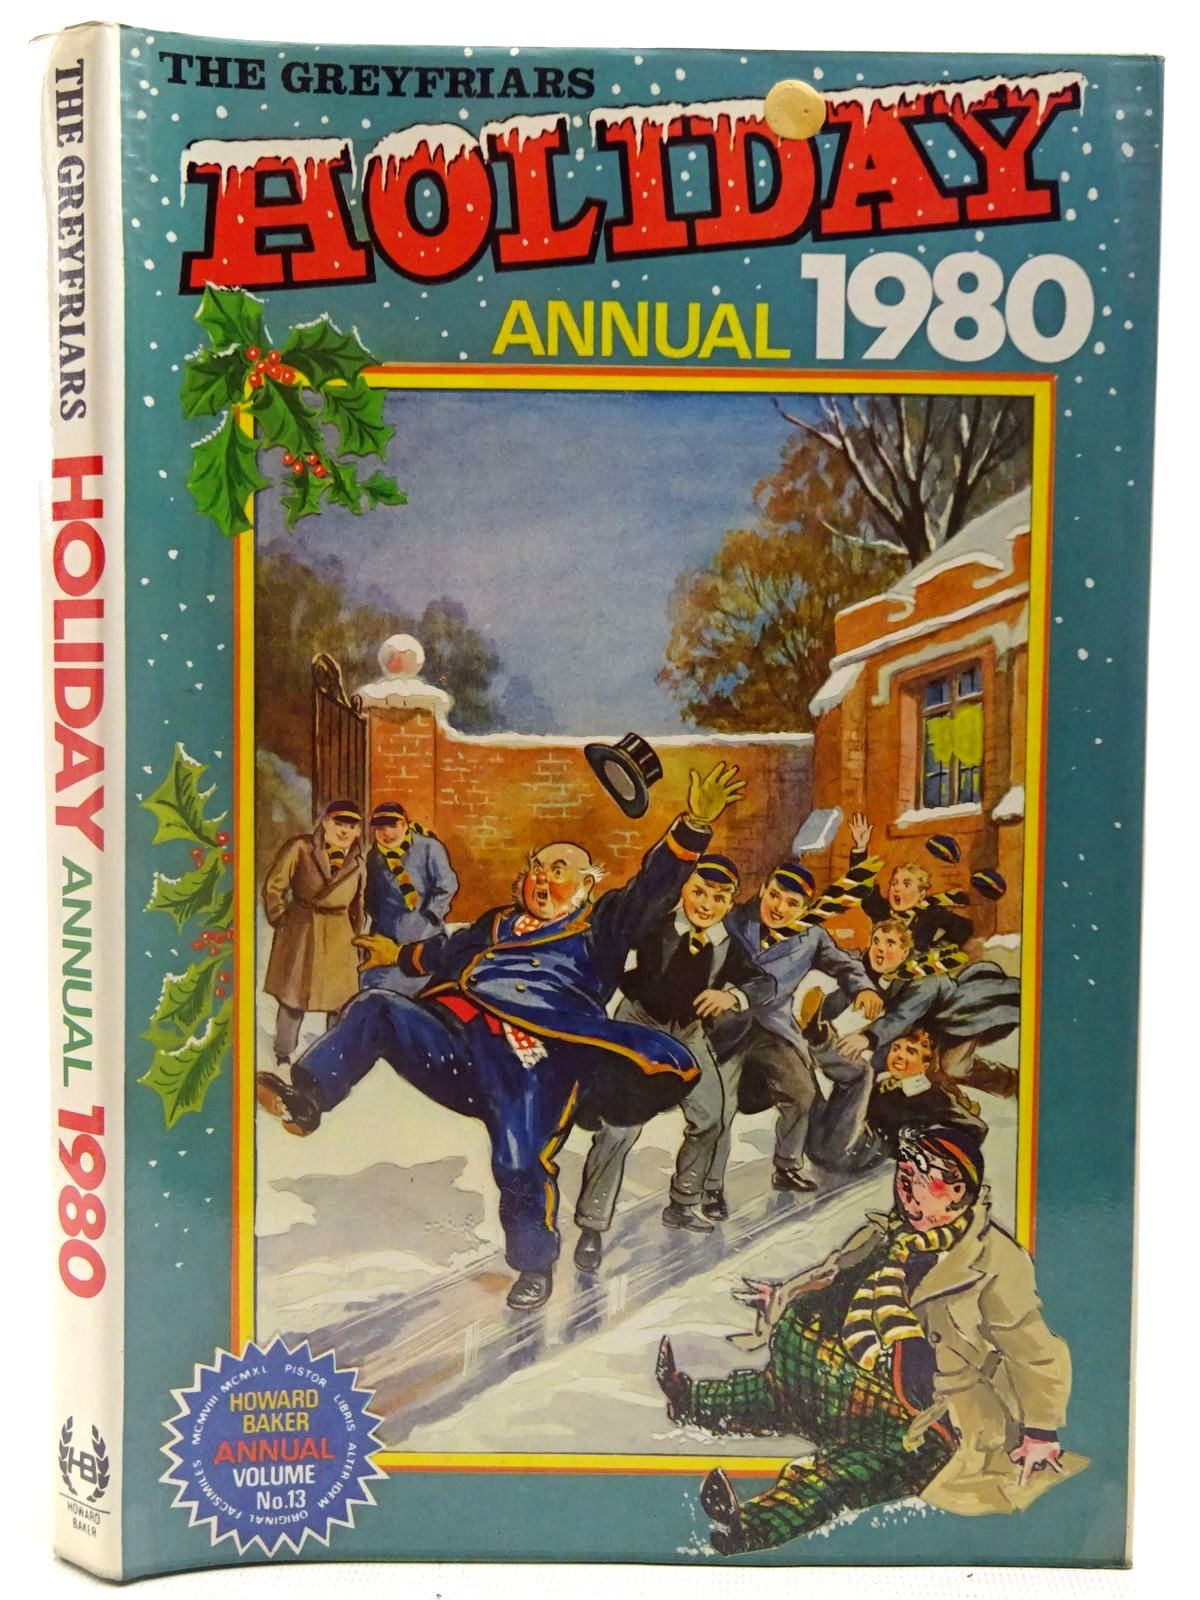 Photo of THE GREYFRIARS HOLIDAY ANNUAL 1980 written by Richards, Frank published by Howard Baker Press (STOCK CODE: 2126983)  for sale by Stella & Rose's Books